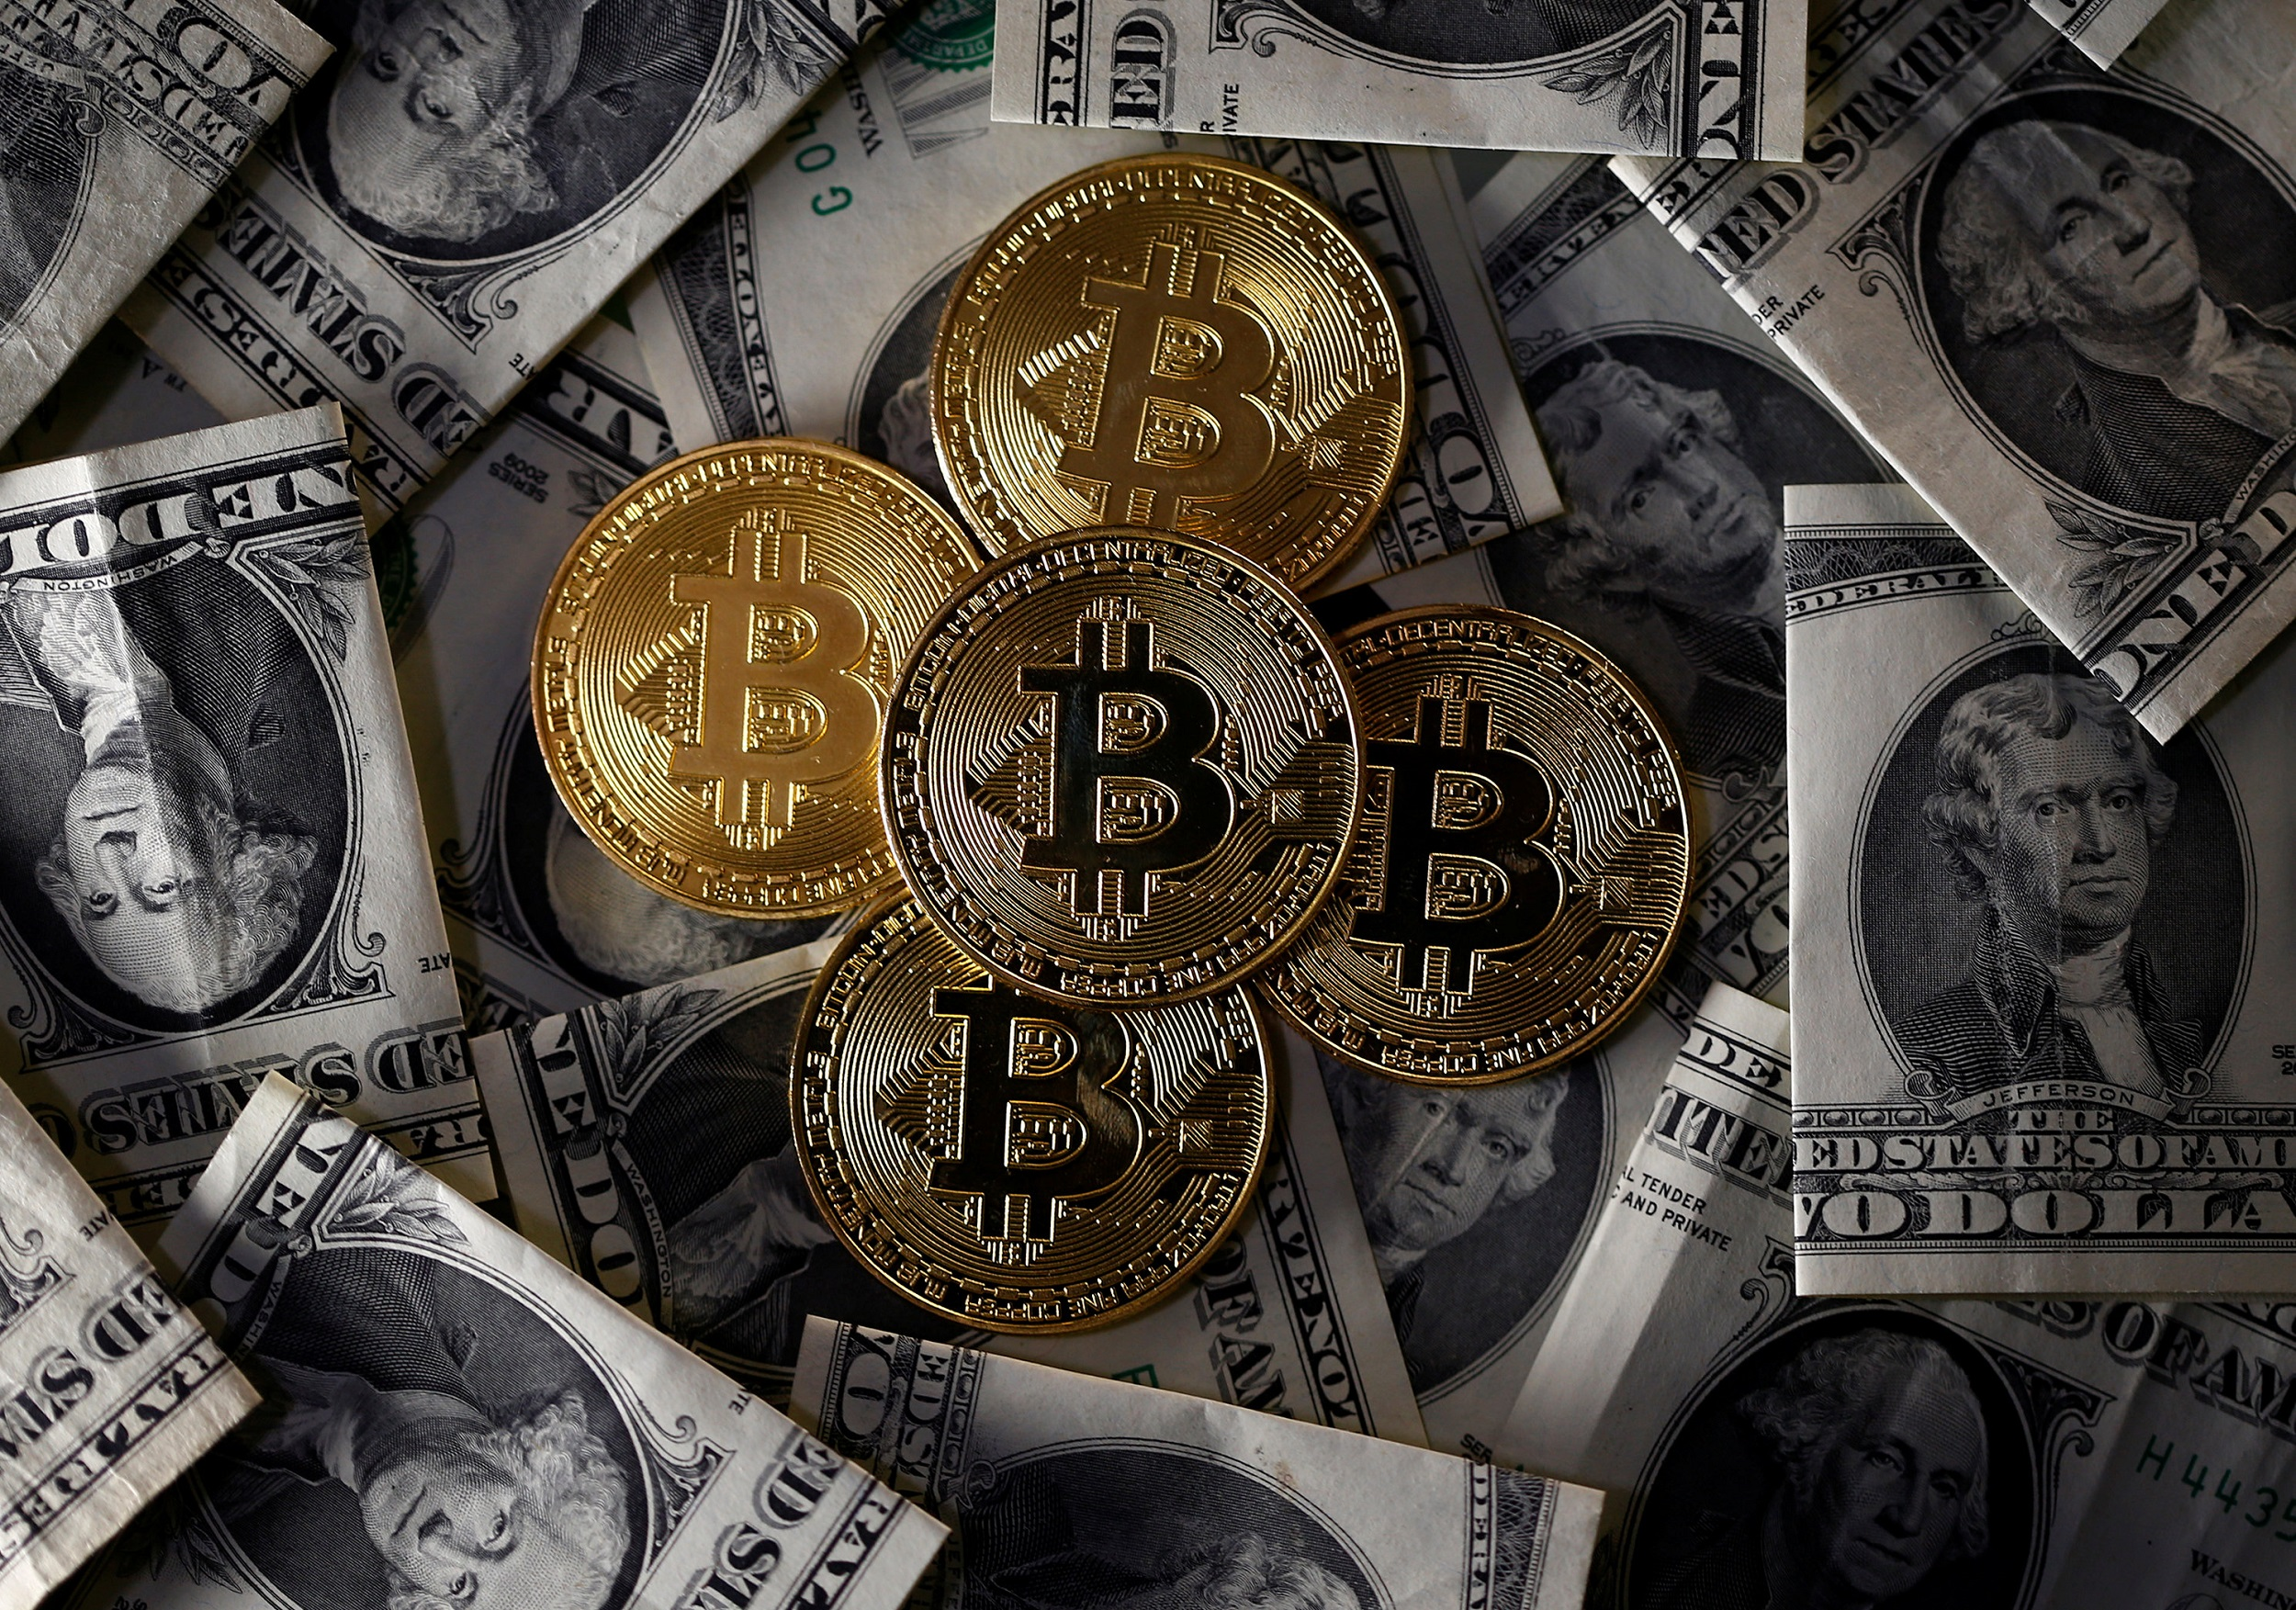 WEB_PHOTO_BITCOIN_DOLLAR_20112017